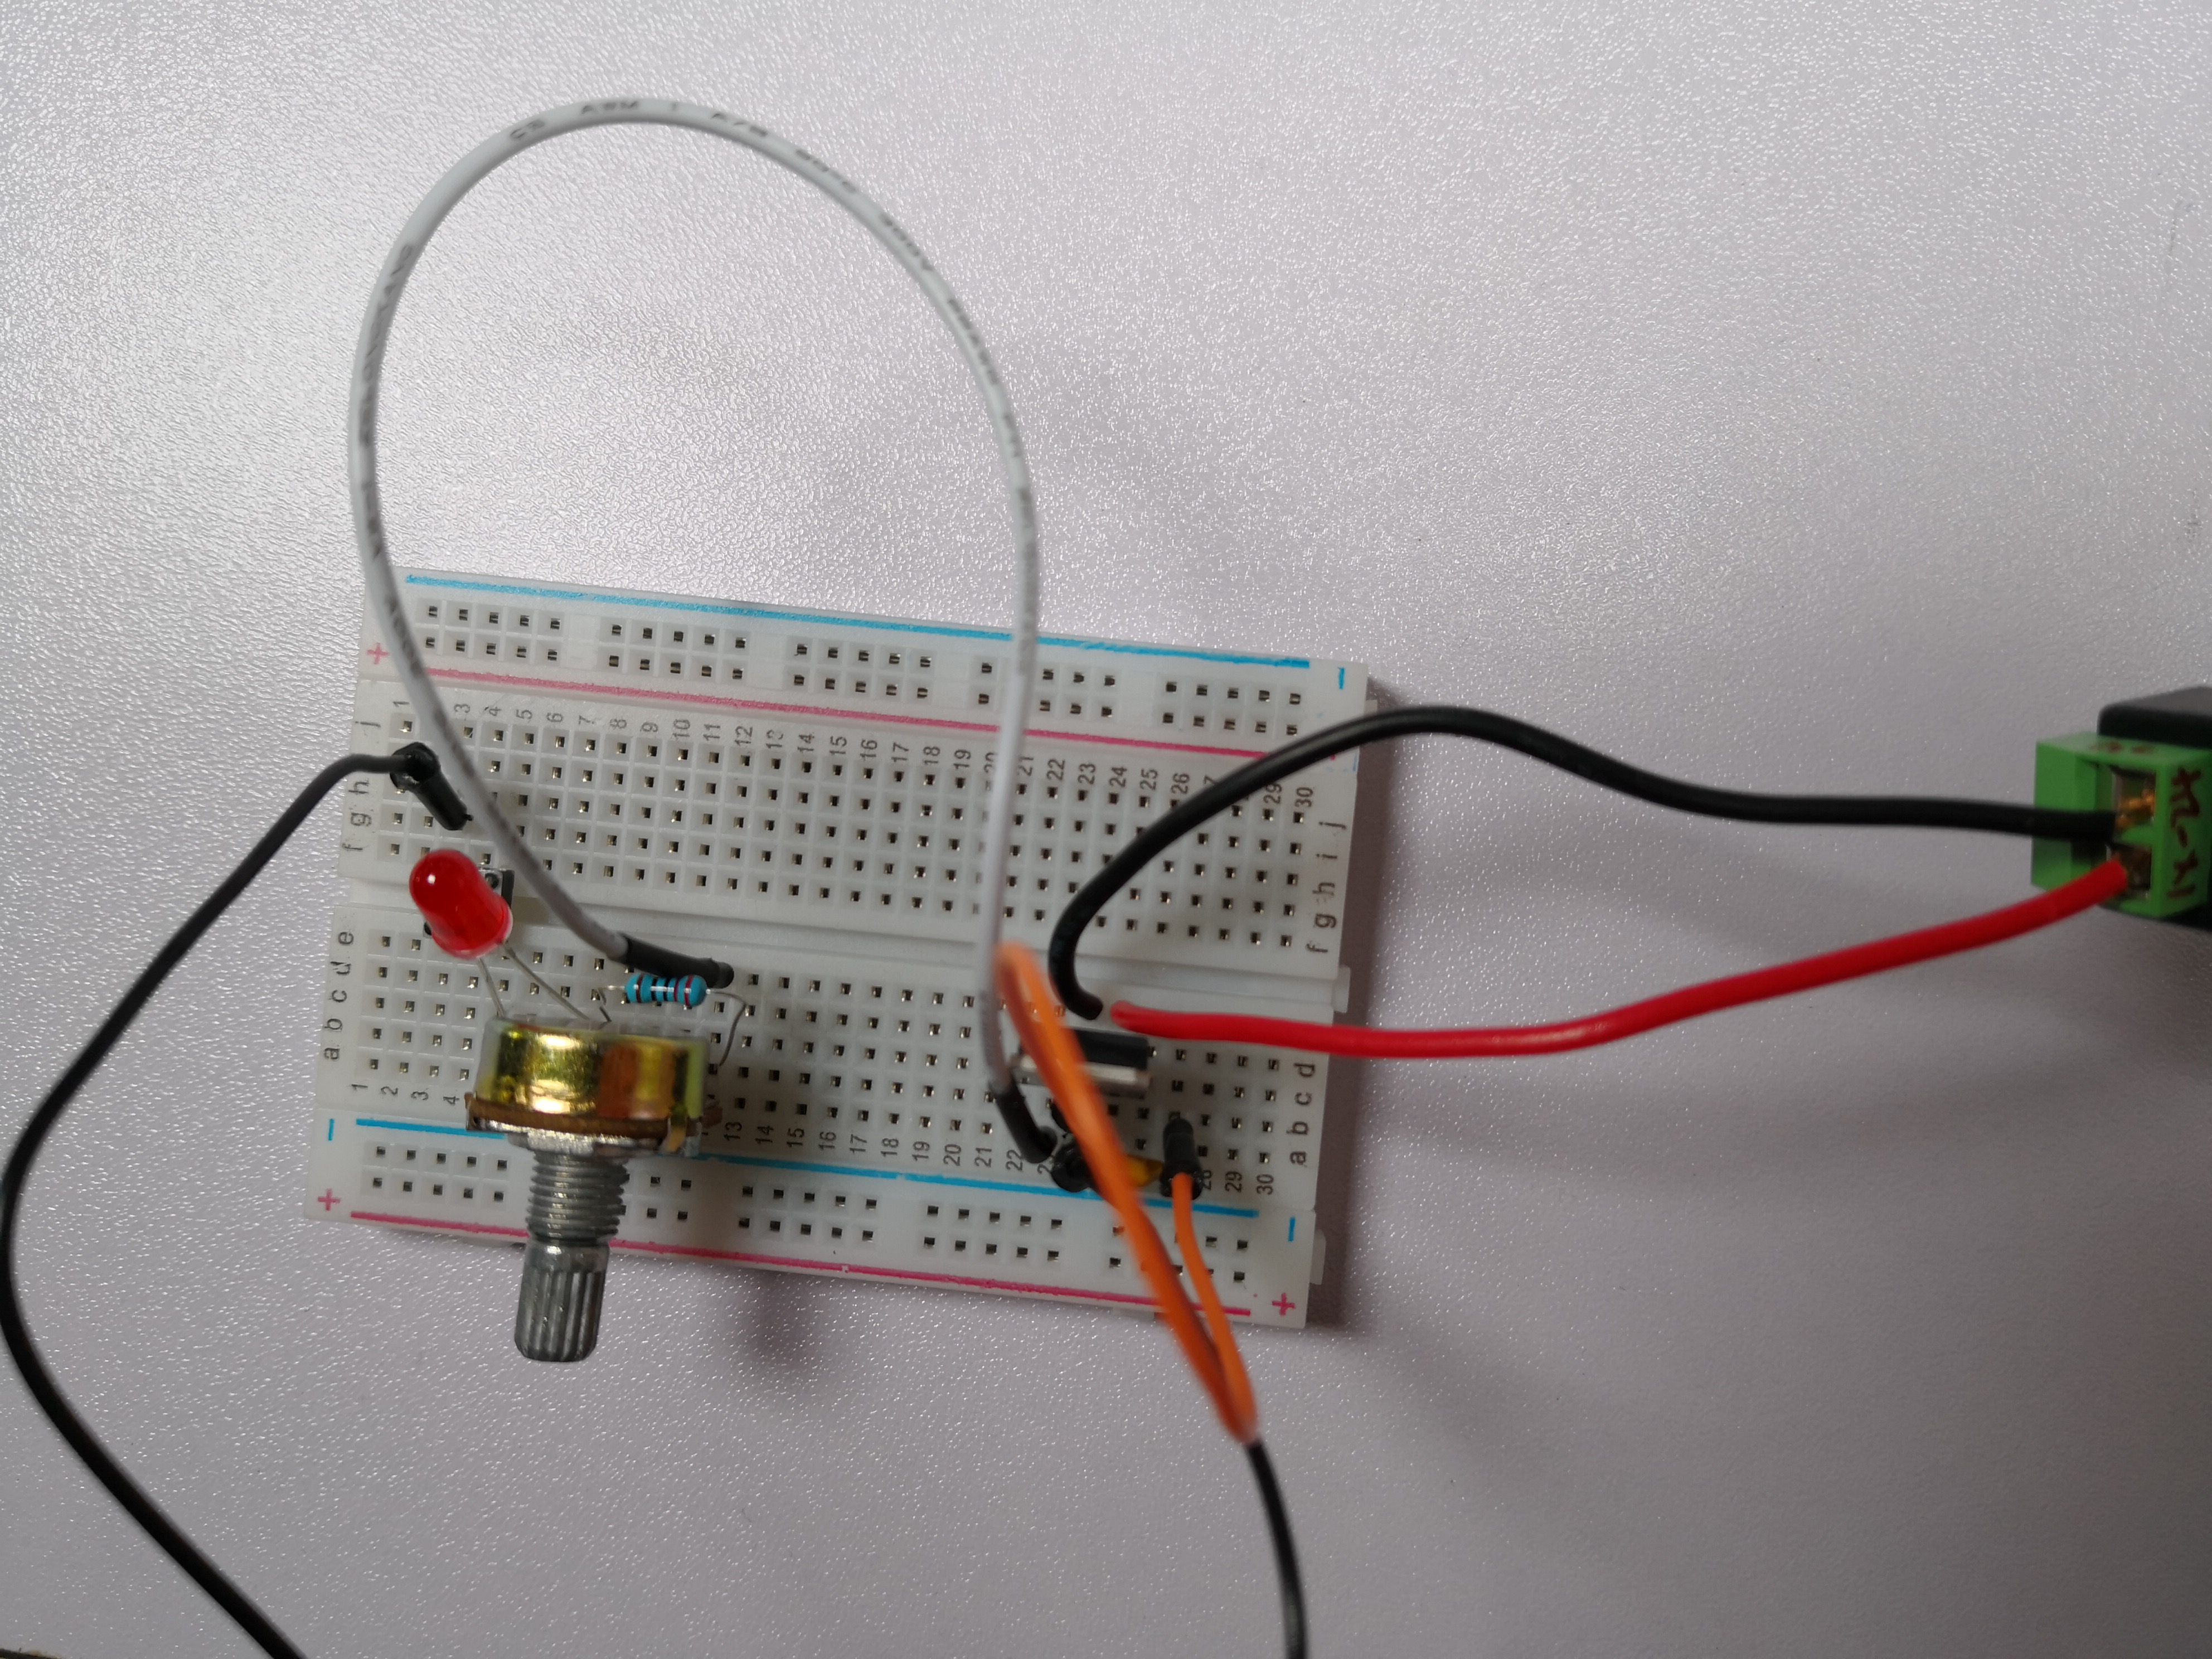 Imx Recitation 1 Electronic Sean Too Complicated For A Breadboard Build Circuits Circuit 3 Contains All The Items In 2 And Add Variable Resistor Resistors Resistance Is Adjustable By Screwing Switch On It